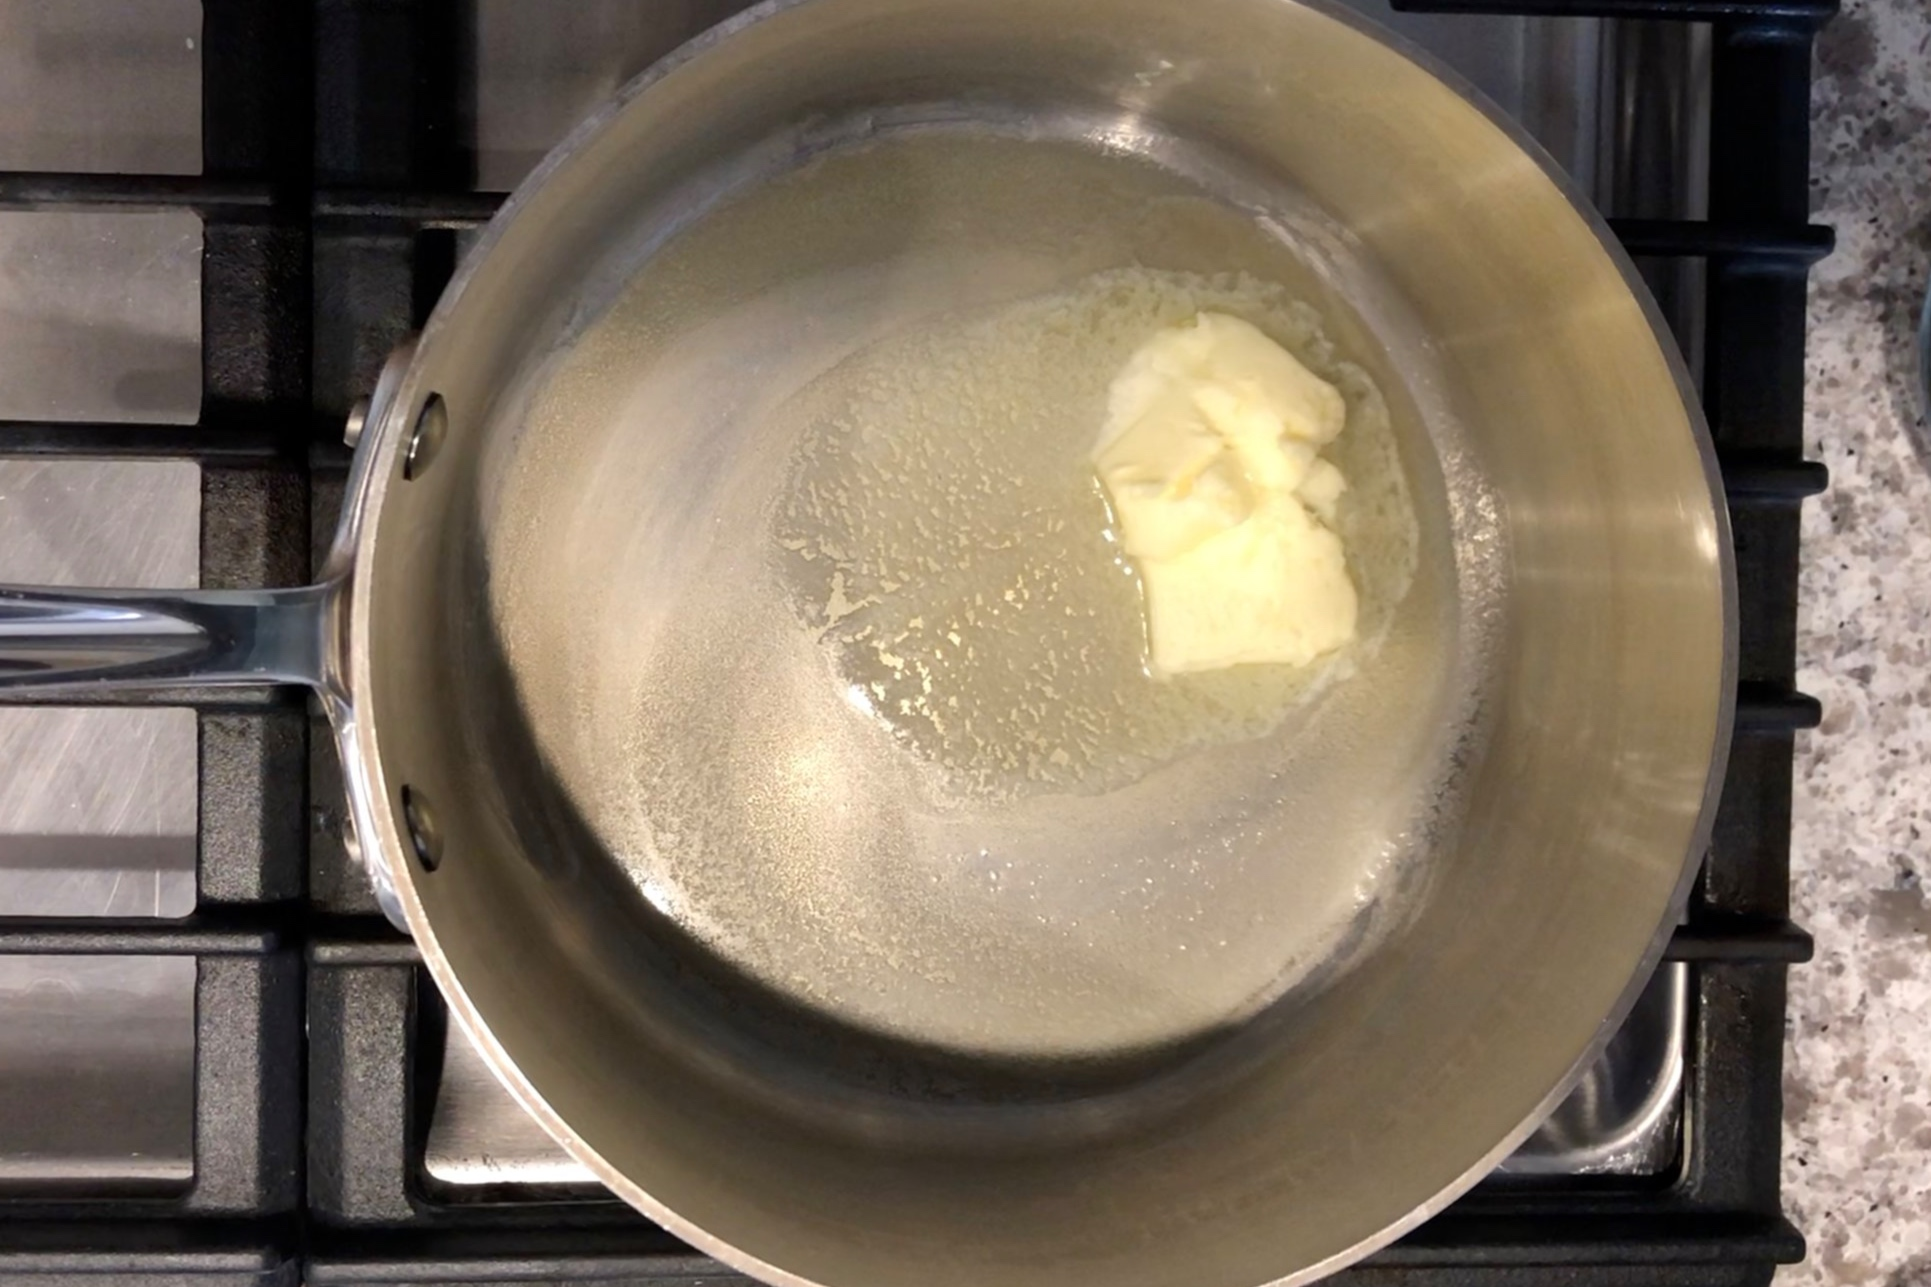 2. In a large saucepan, add the butter and melt over medium heat. -